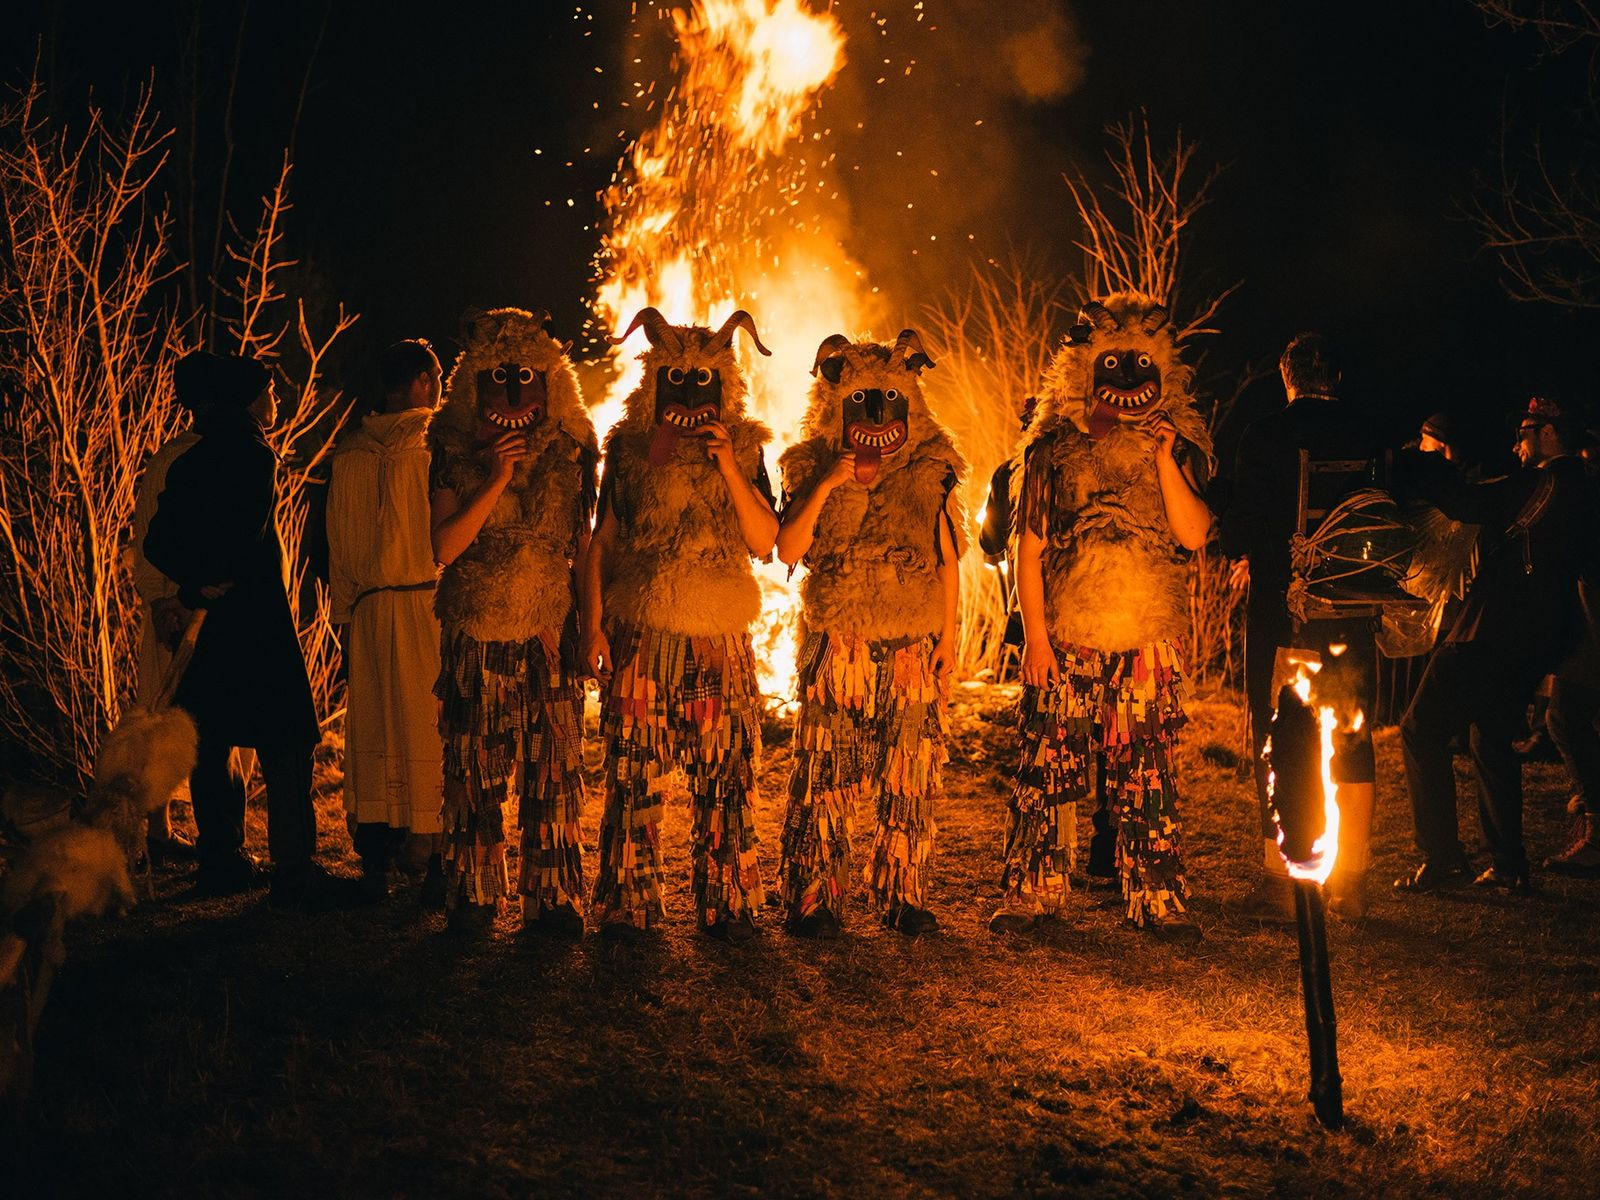 """As night descends on Ravenski Pust, the """"Ugly Ones"""" gather around a bonfire, where the villagers ..."""